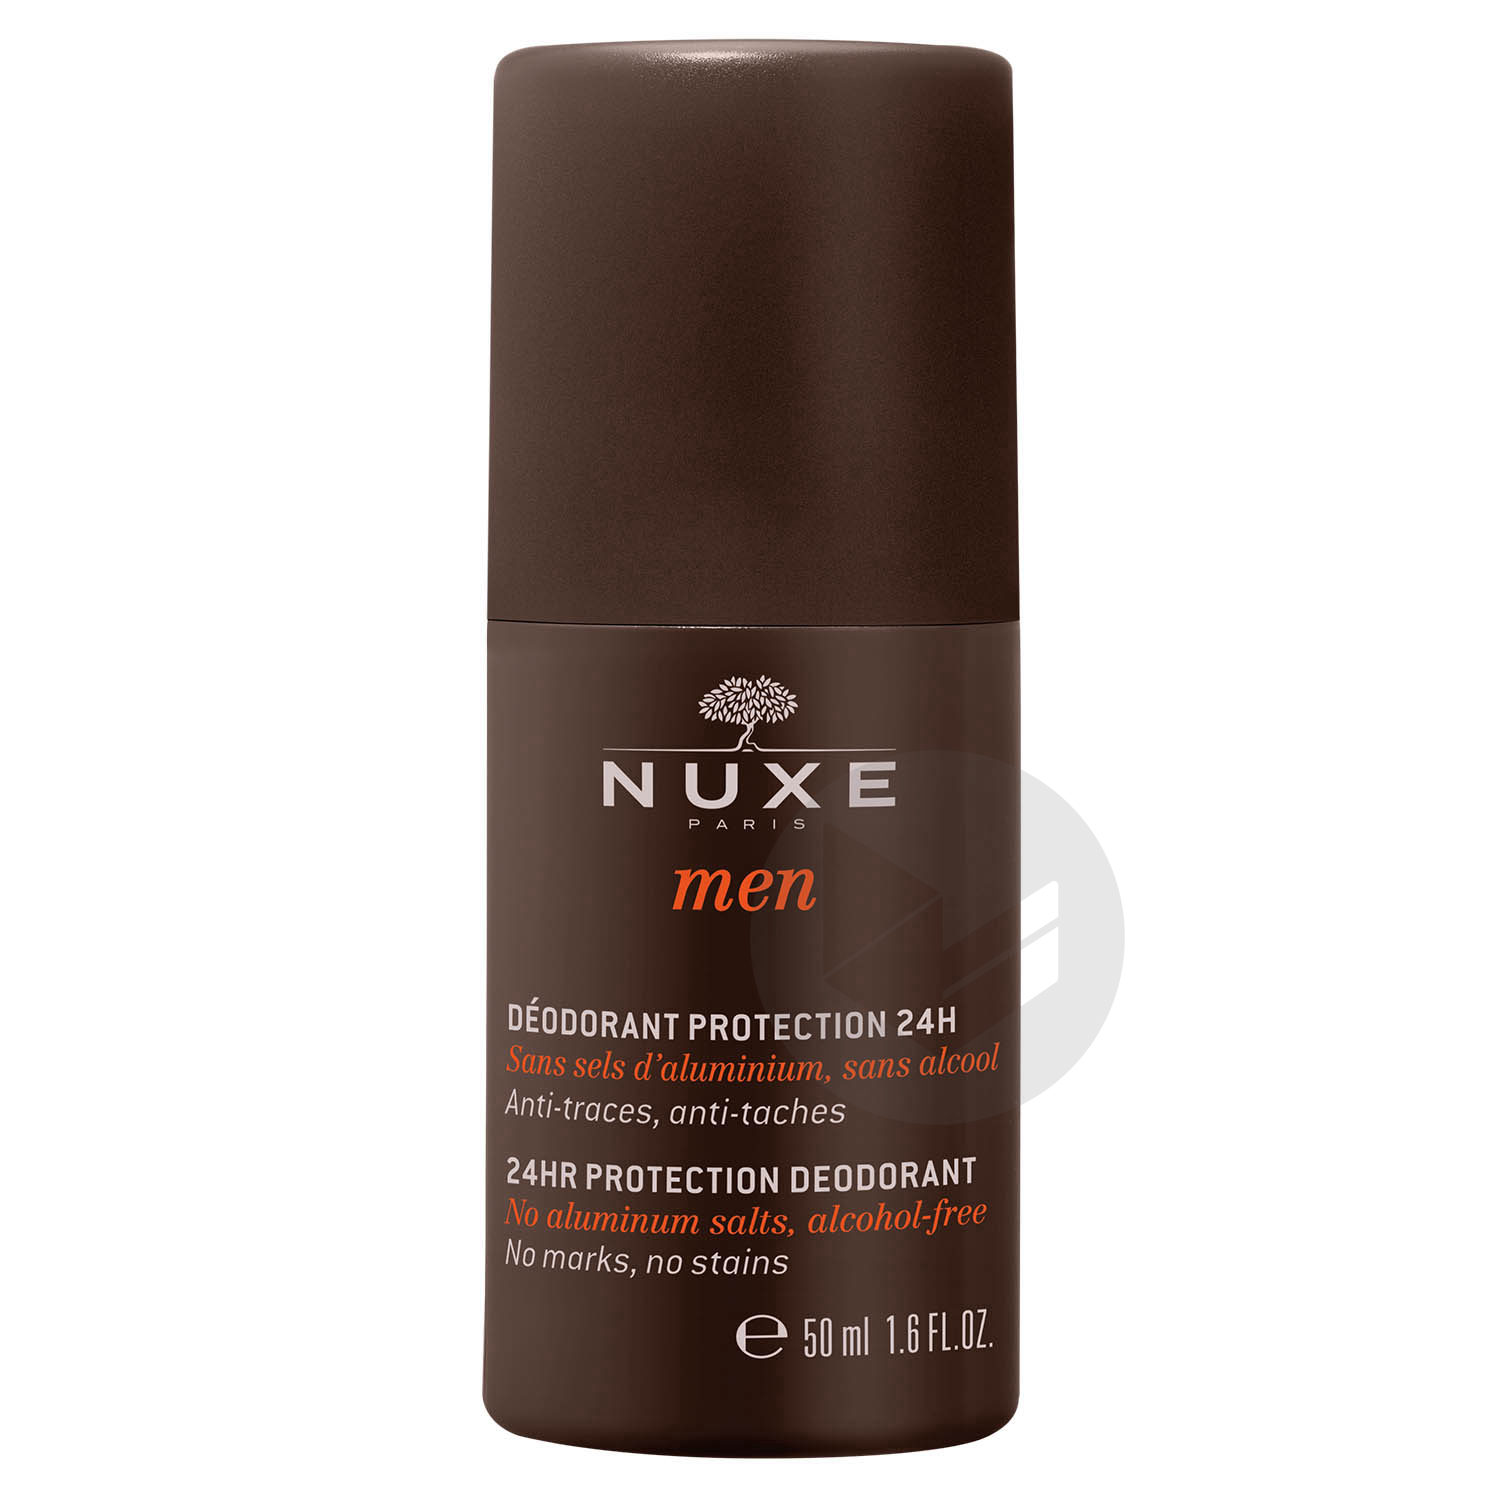 Deodorant Protection 24 H Men